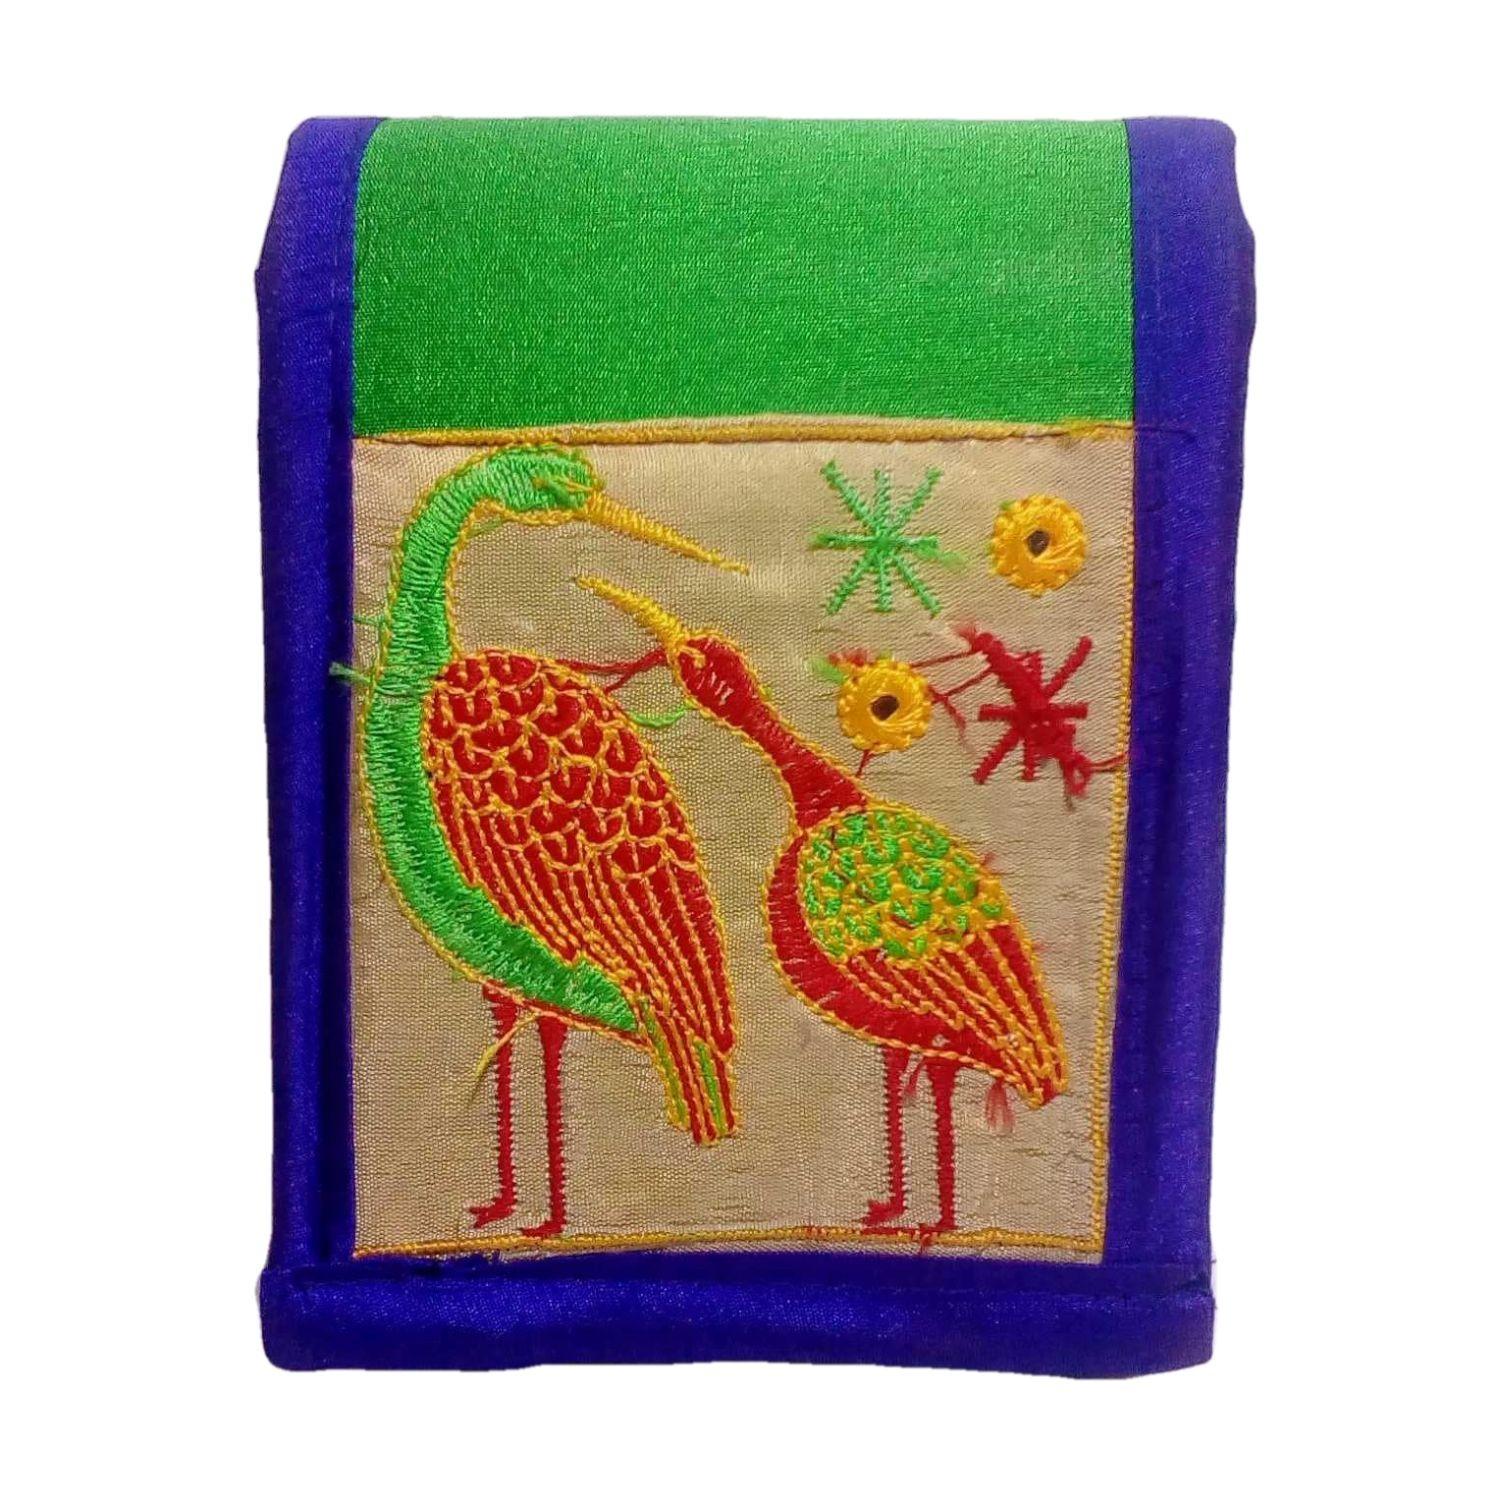 Handmade Excellent Green Genuine Sling Bag with embroidery work  by Women Self Help Groups of Rajasthan